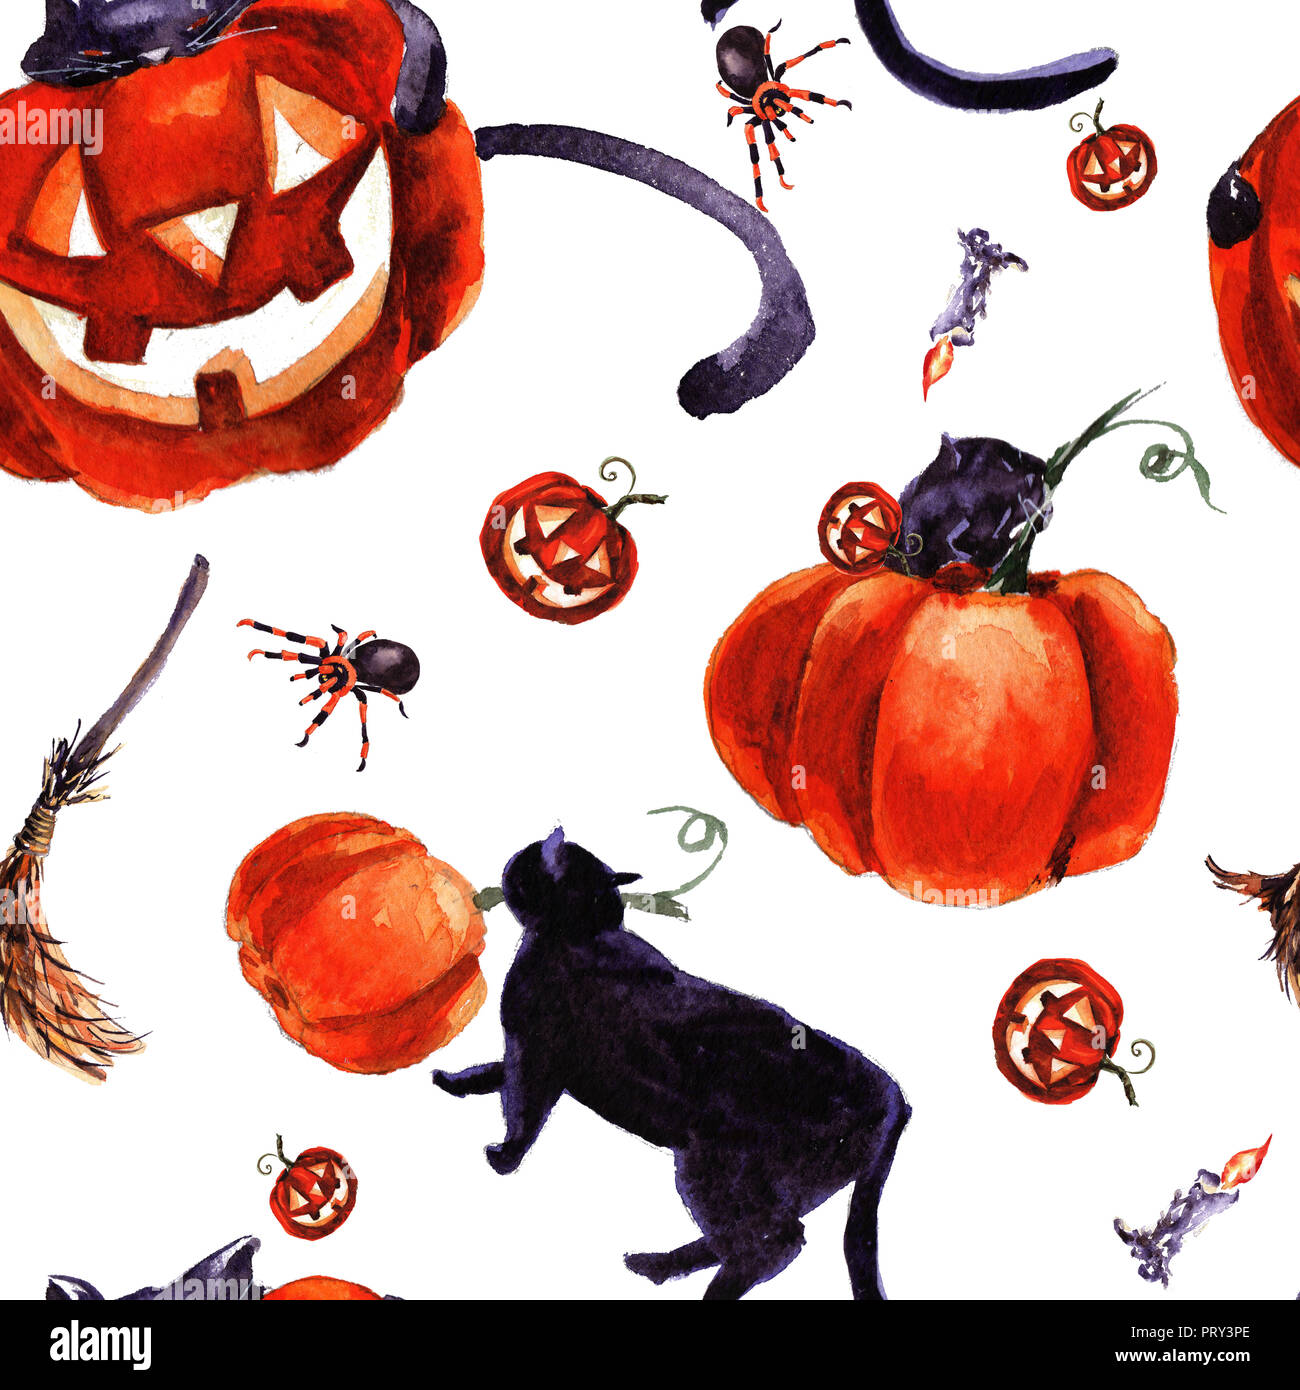 Set Di Halloween Holiday Simbolo Disegnato A Mano Illustrazione Ad